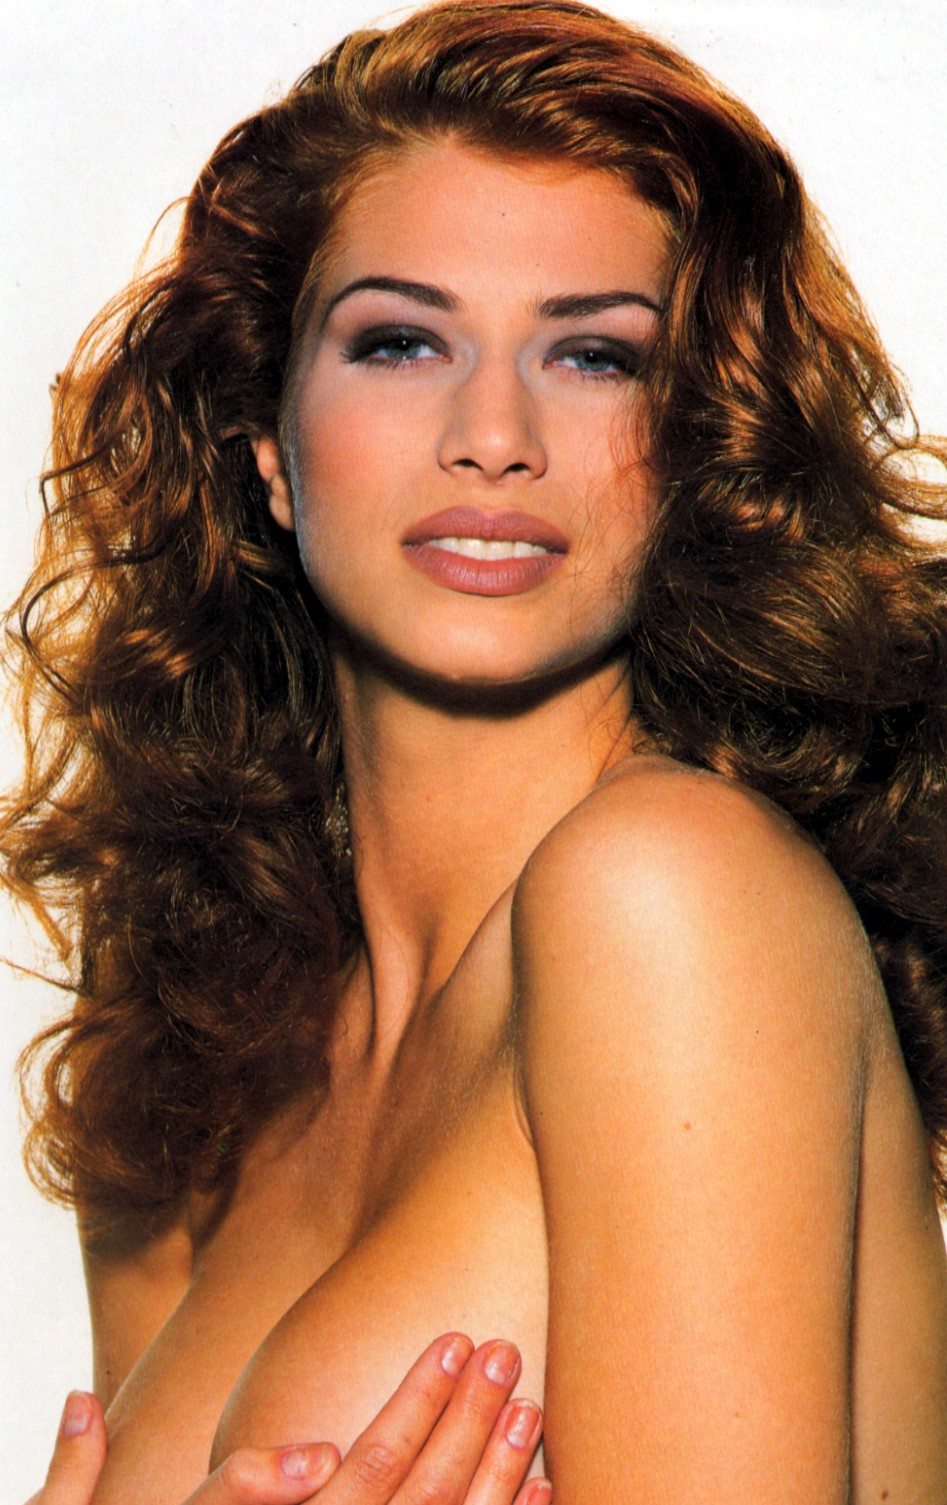 Amber Smith Nude Photos famous biographies: amber smith biography